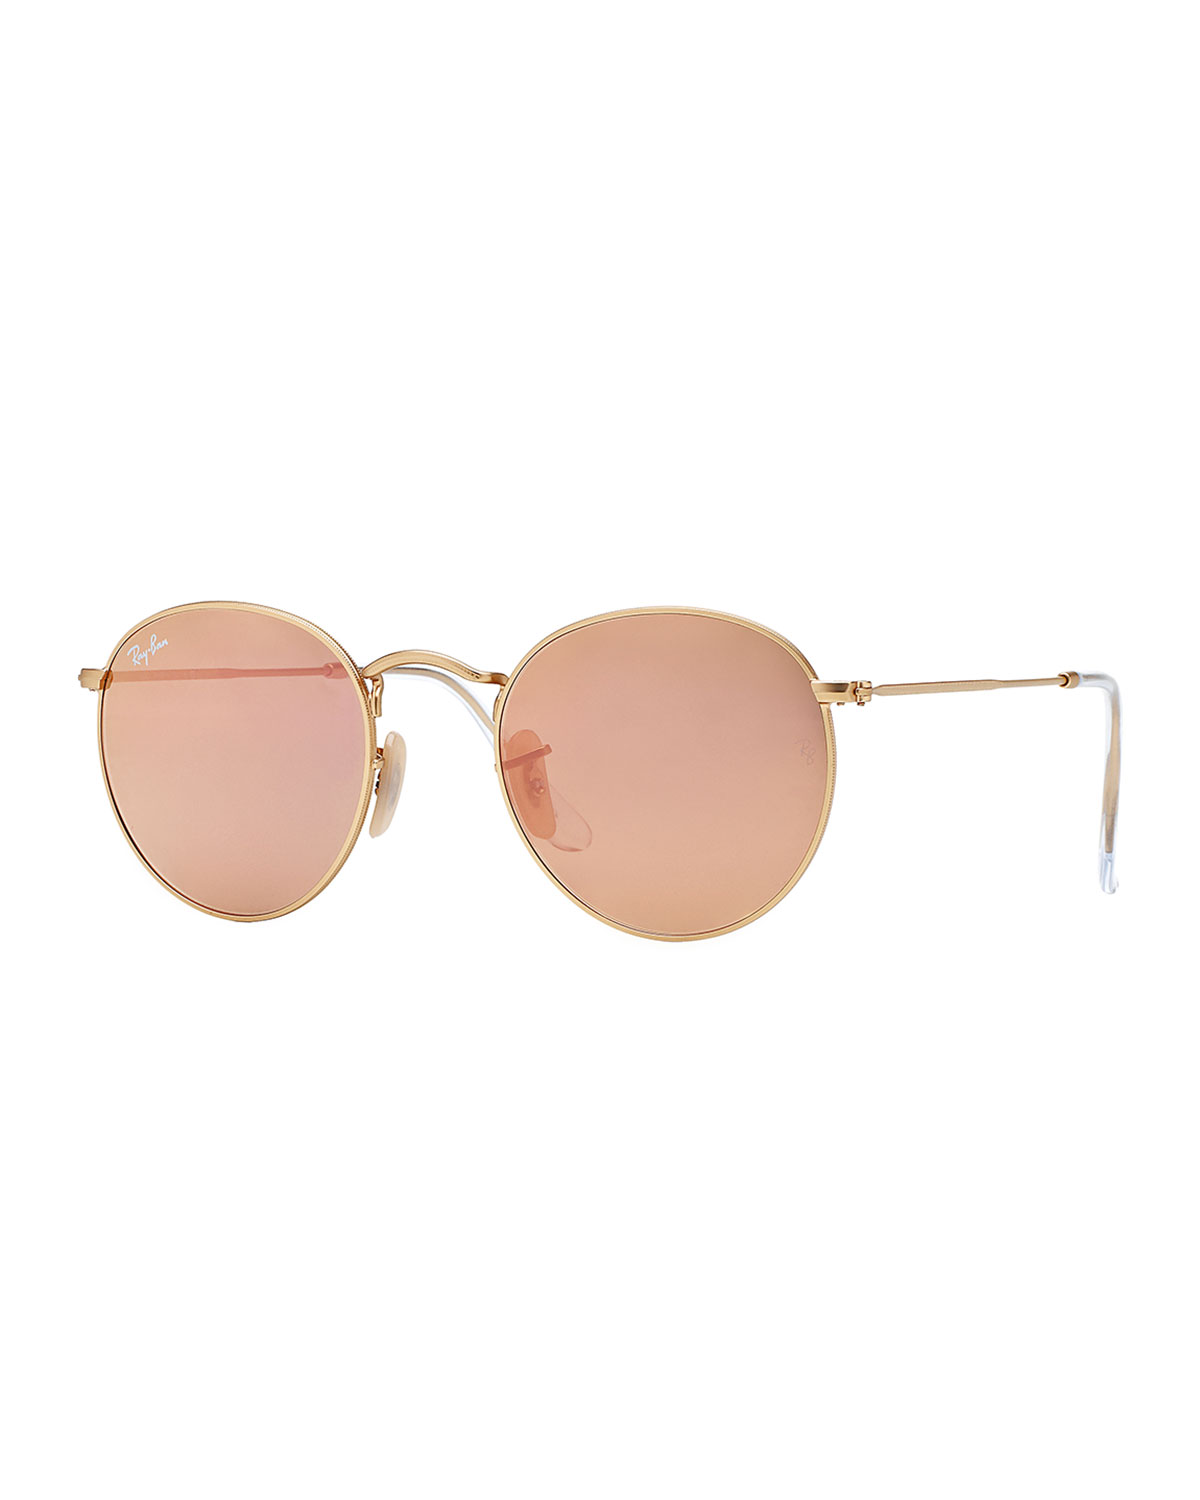 d629b183066c3 Ray-Ban Round Metal-Frame Sunglasses with Pink Lens